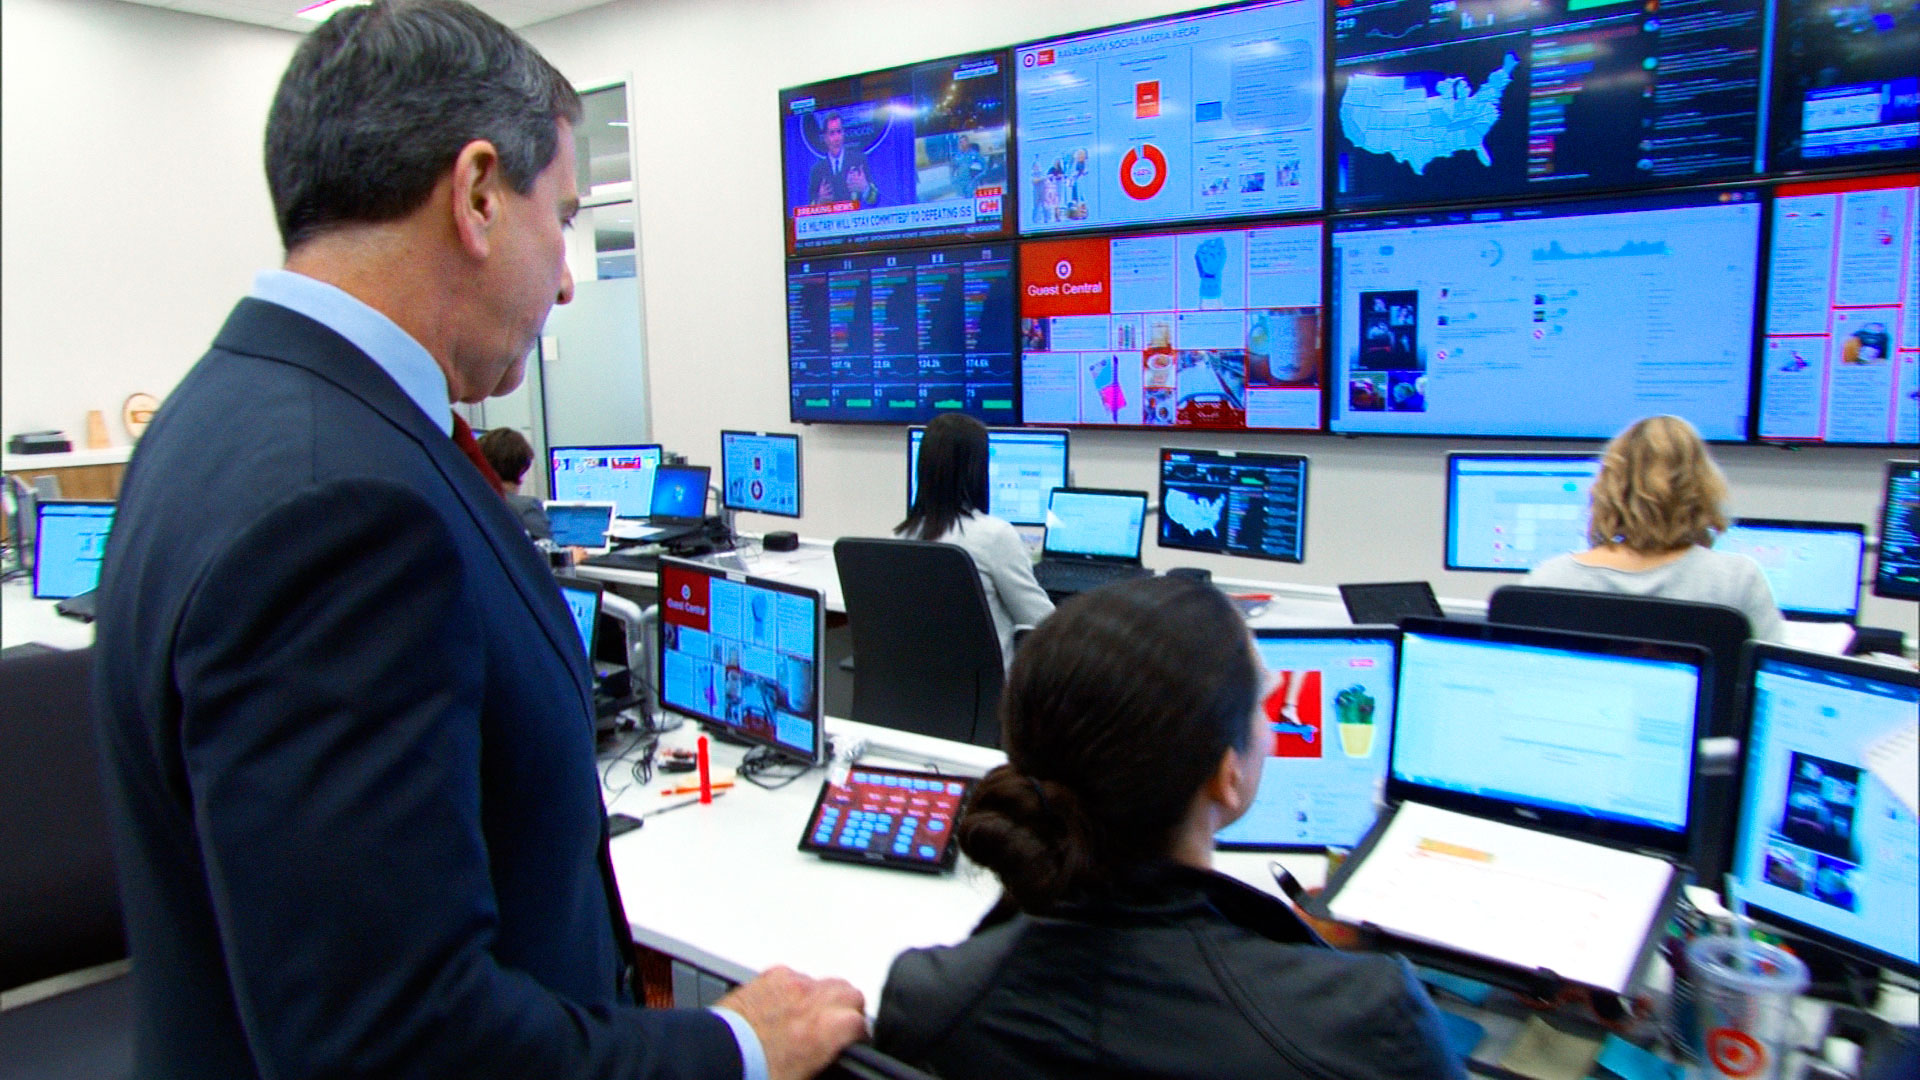 The data-monitoring hub at Target's headquarters